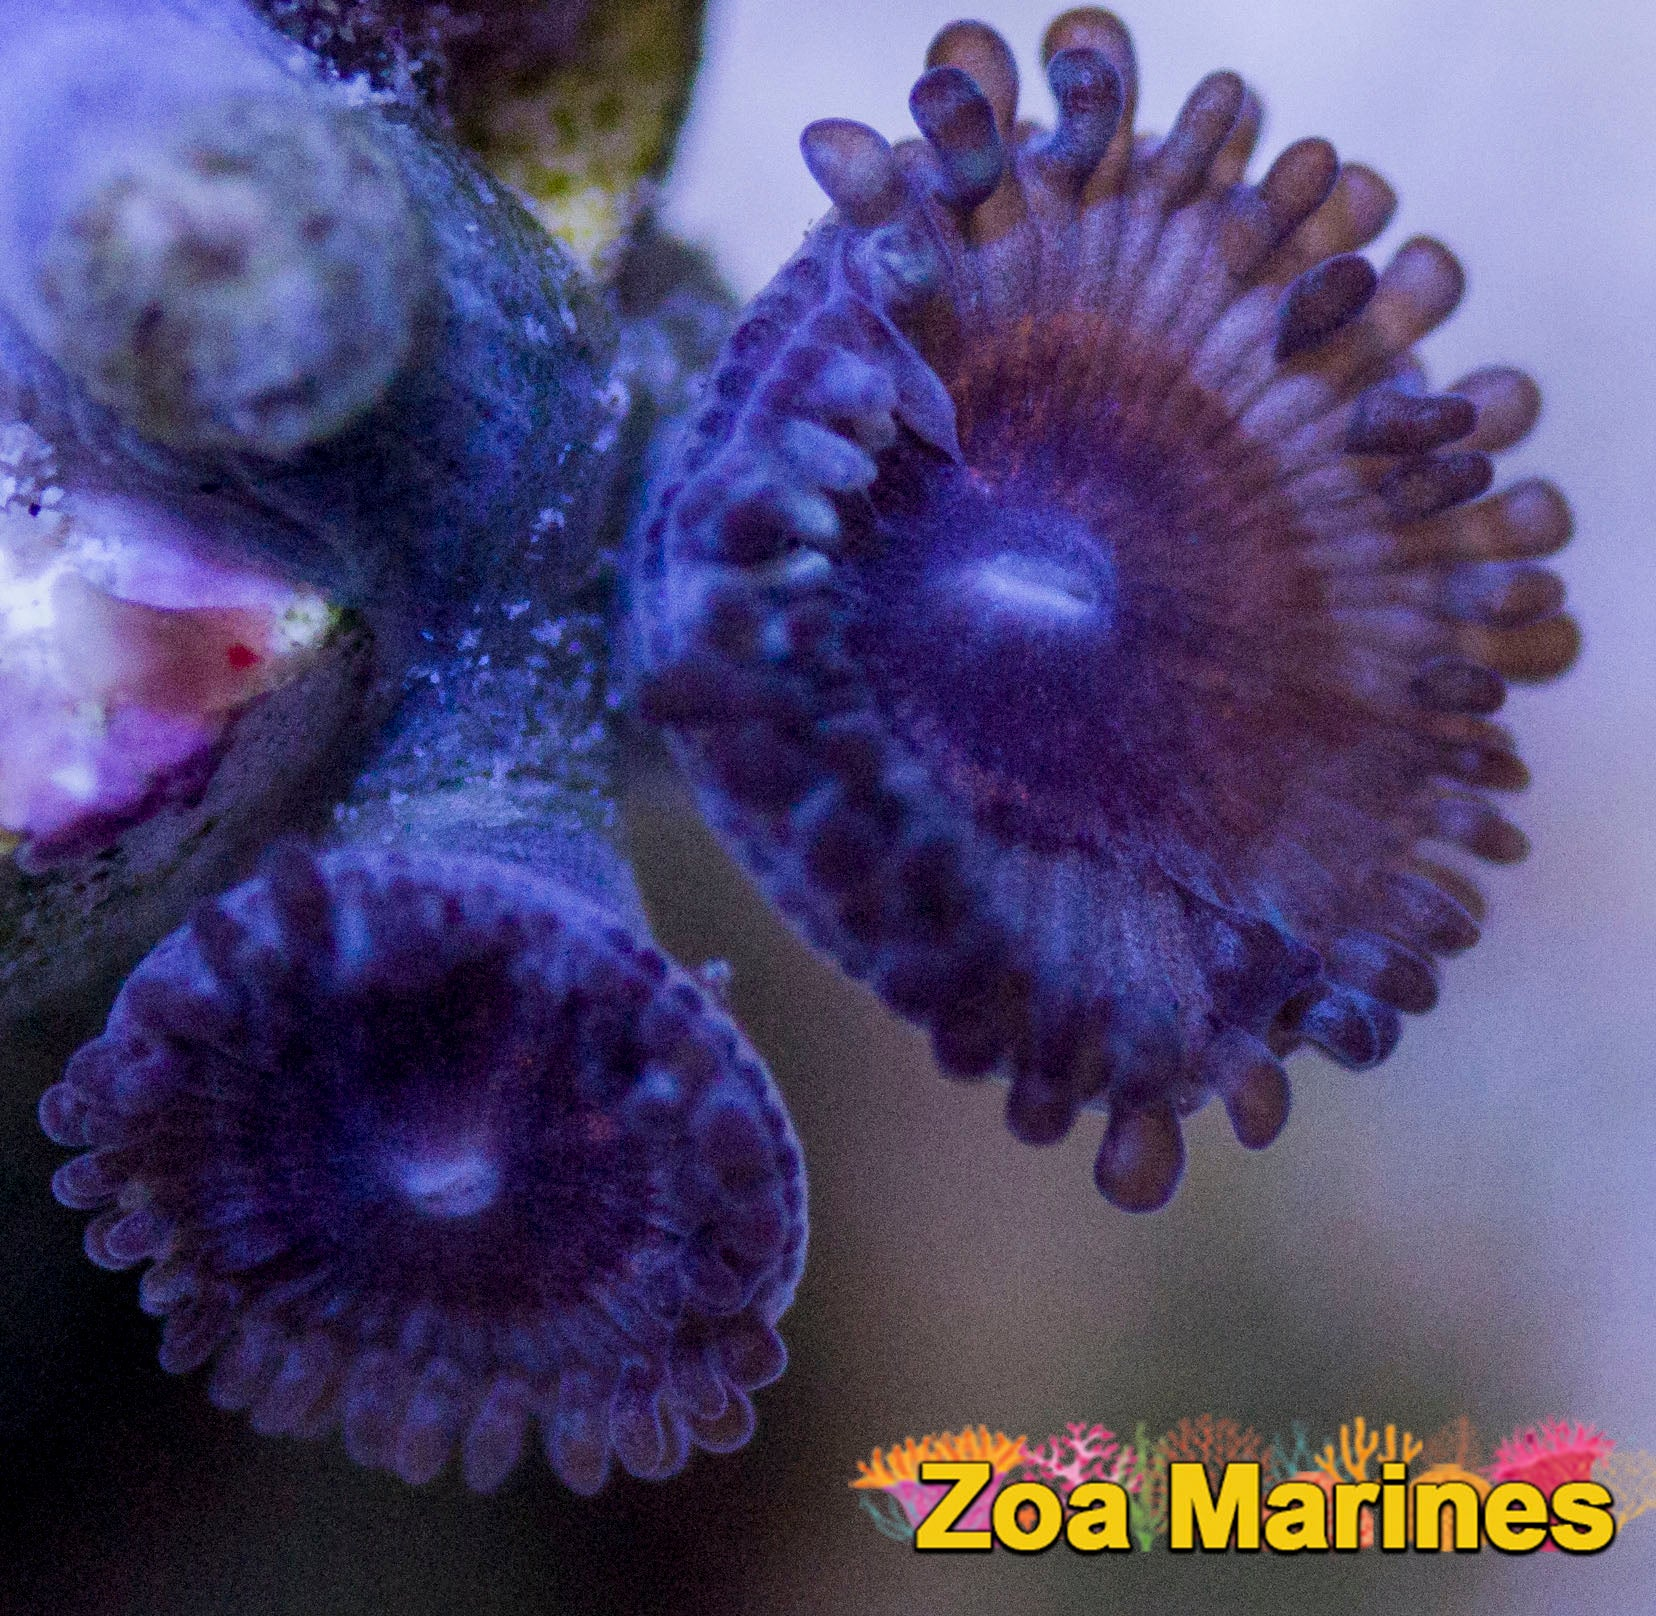 Zoa 'Devil's Armour' Single Heads